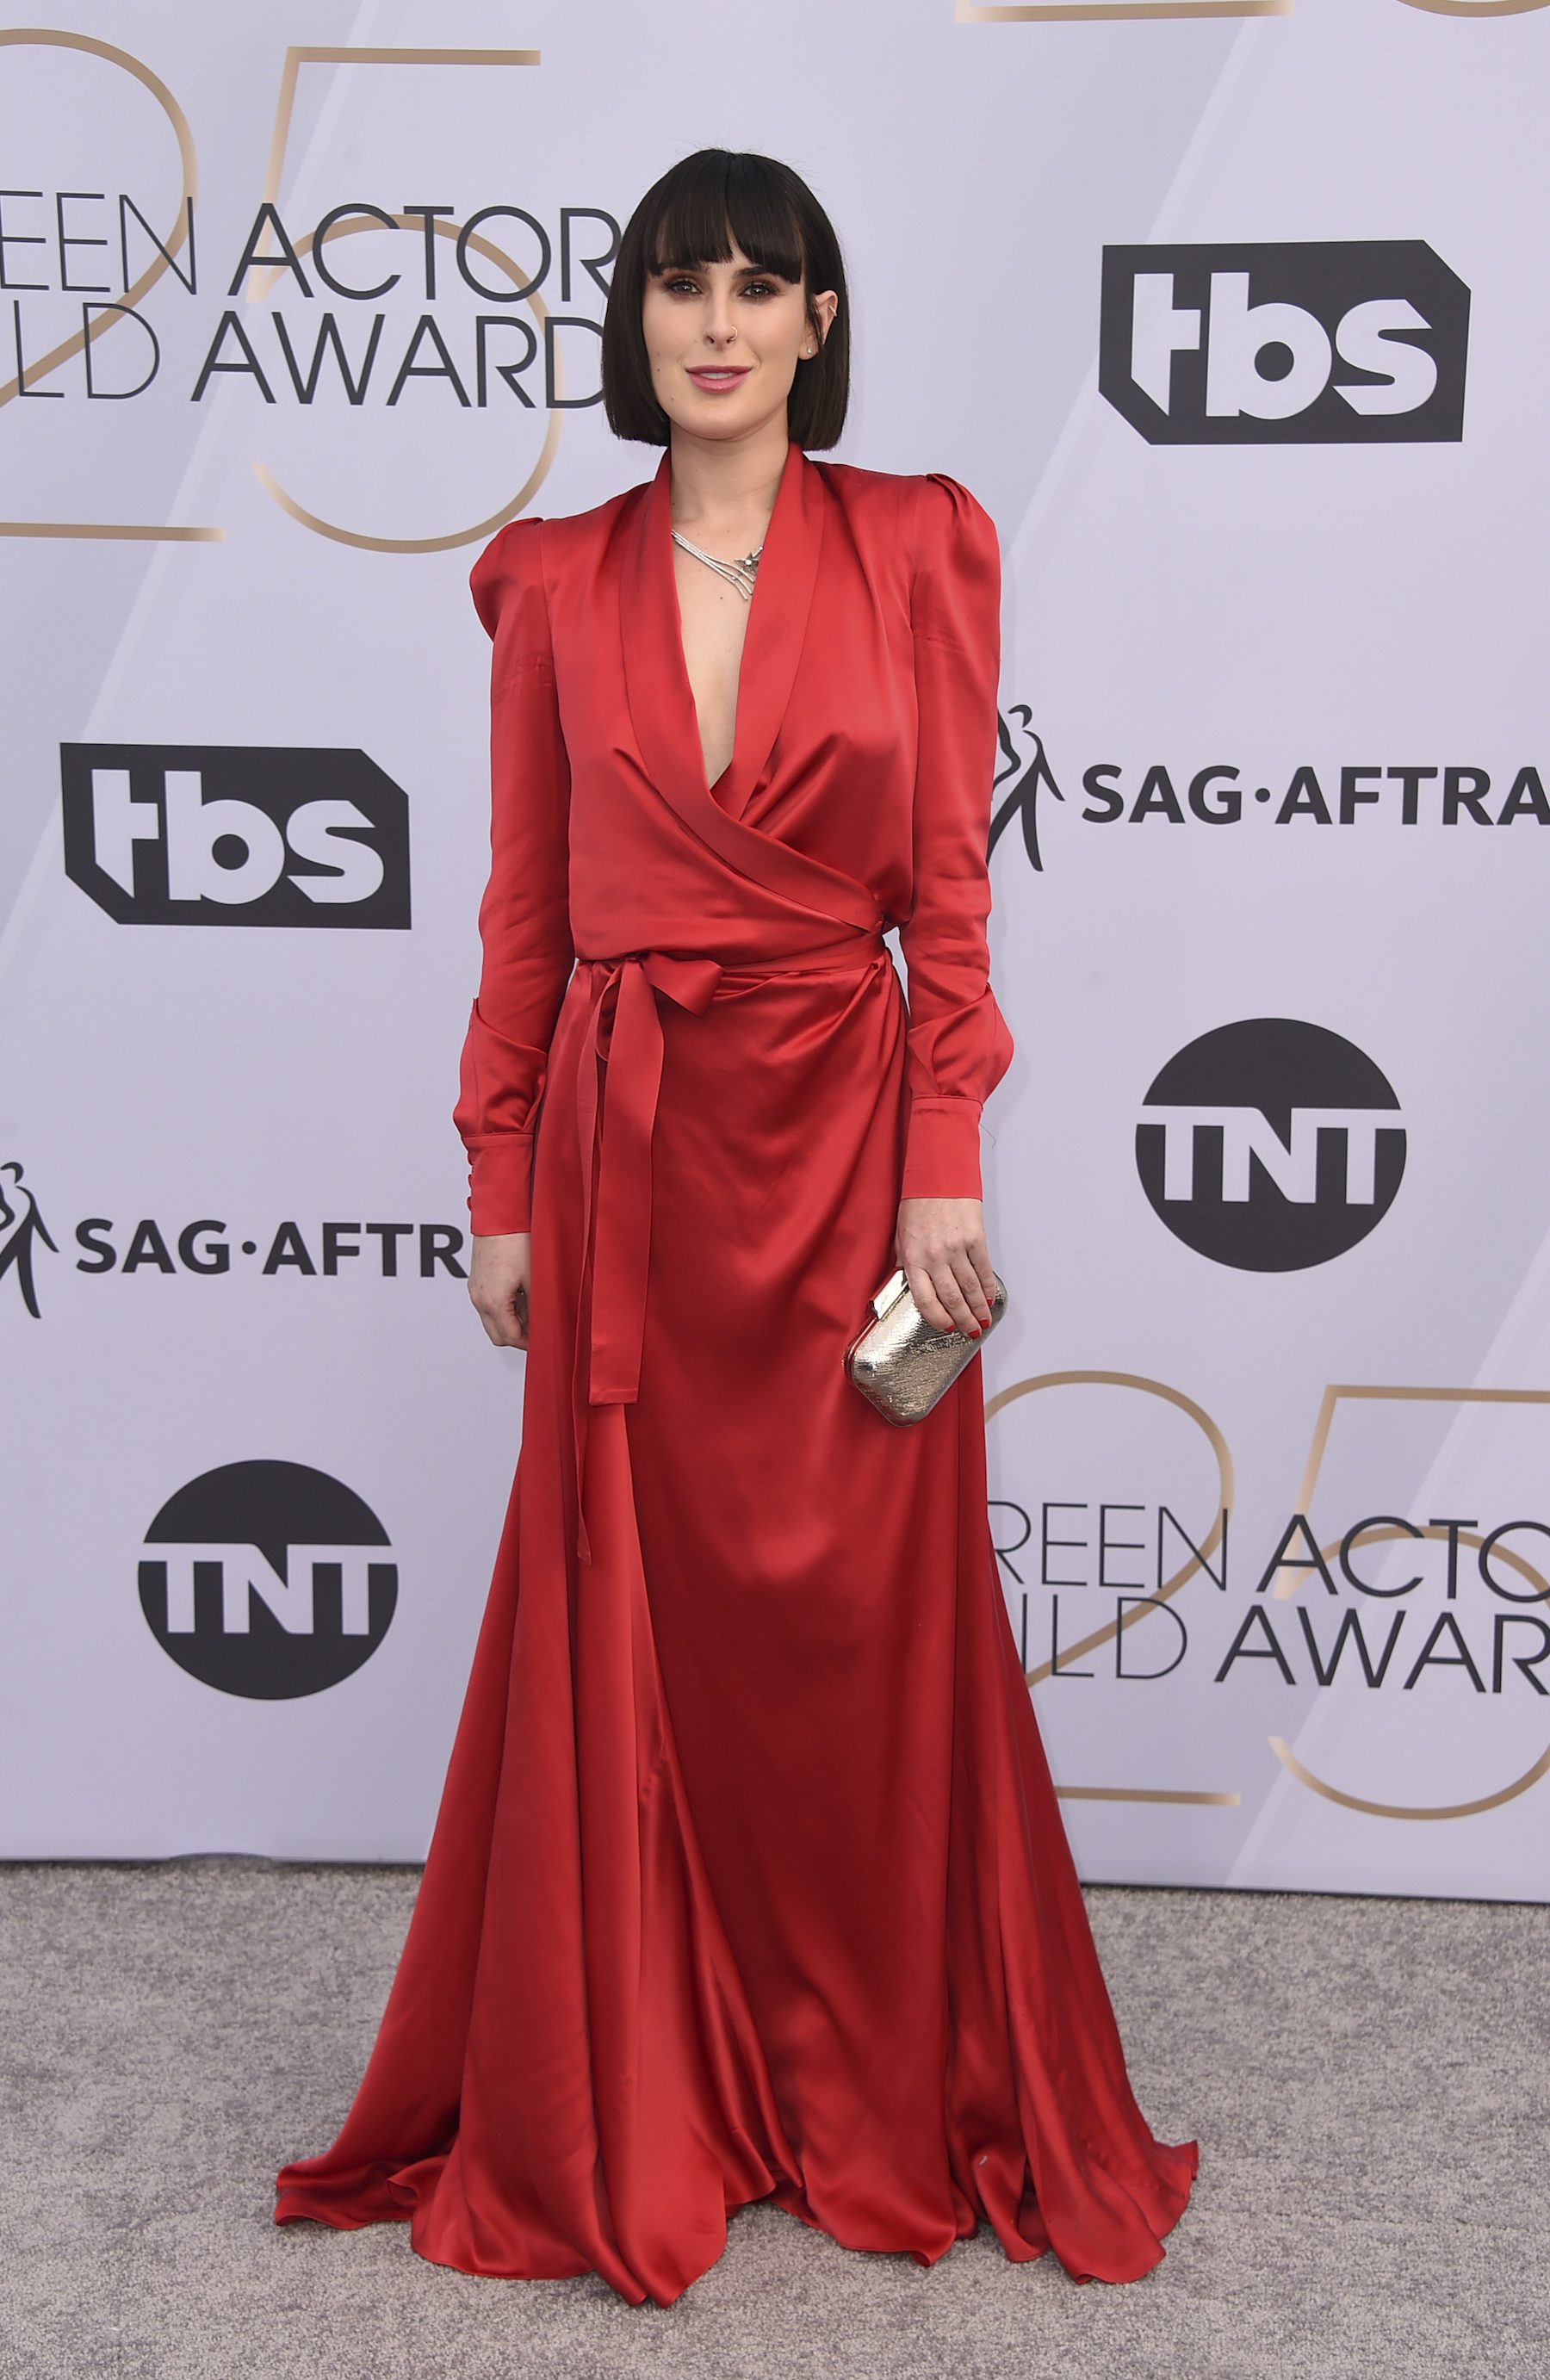 <div class='meta'><div class='origin-logo' data-origin='AP'></div><span class='caption-text' data-credit='Jordan Strauss/Invision/AP'>Rumer Willis arrives at the 25th annual Screen Actors Guild Awards at the Shrine Auditorium & Expo Hall on Sunday, Jan. 27, 2019, in Los Angeles.</span></div>